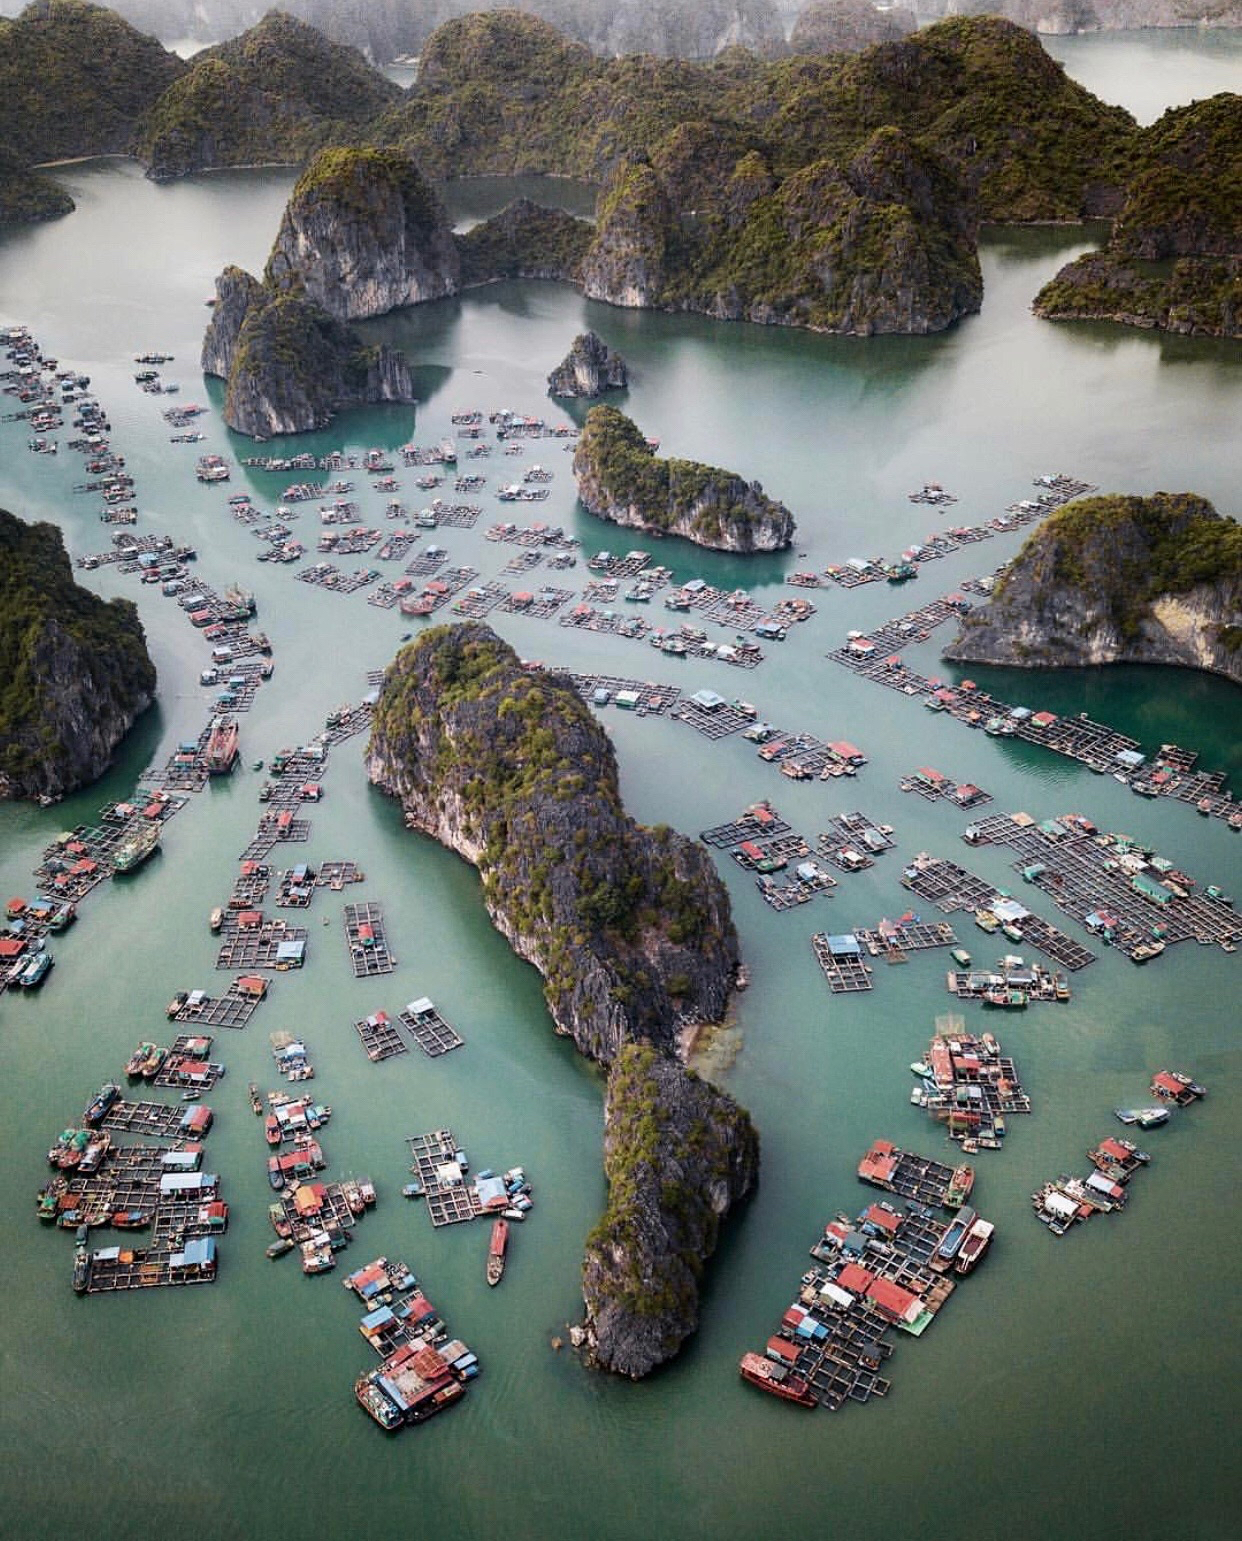 """Check out this week's """"Drone Sunday"""" post from From Where I Drone, which shows the Cát Bà Archipelago in northern Vietnam. It is made up of 367 islands that span 100 square miles (260 sq. km) in the southeastern edge of Lan Ha Bay. The largest island — also called Cát Bà — has roughly 13,000 inhabitants, with an additional 4,000 people living on floating fishing villages off the coast.  20°44'12.0""""N, 107°03'44.0""""E  Source imagery: @rcrdb"""